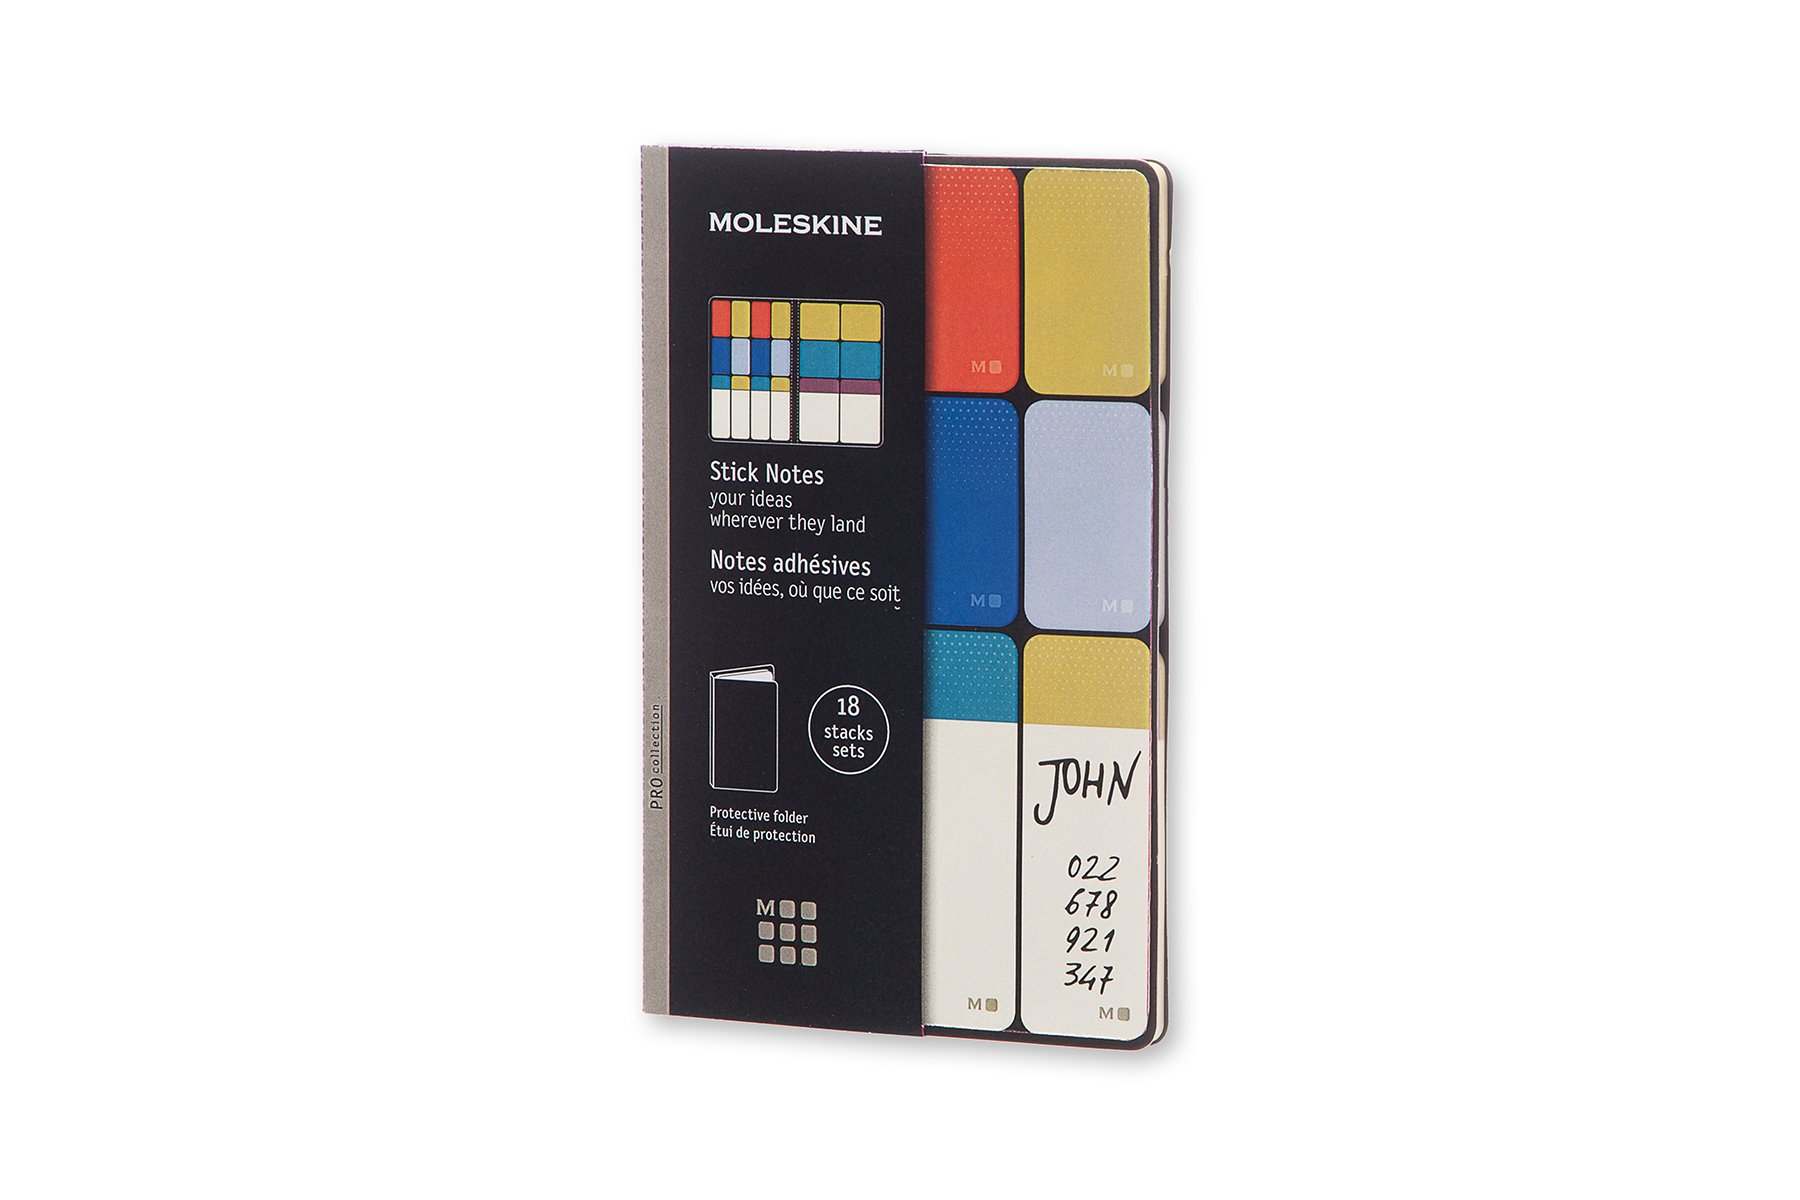 Moleskine Stick Notes Pocket Fullcolour (8051272891621)